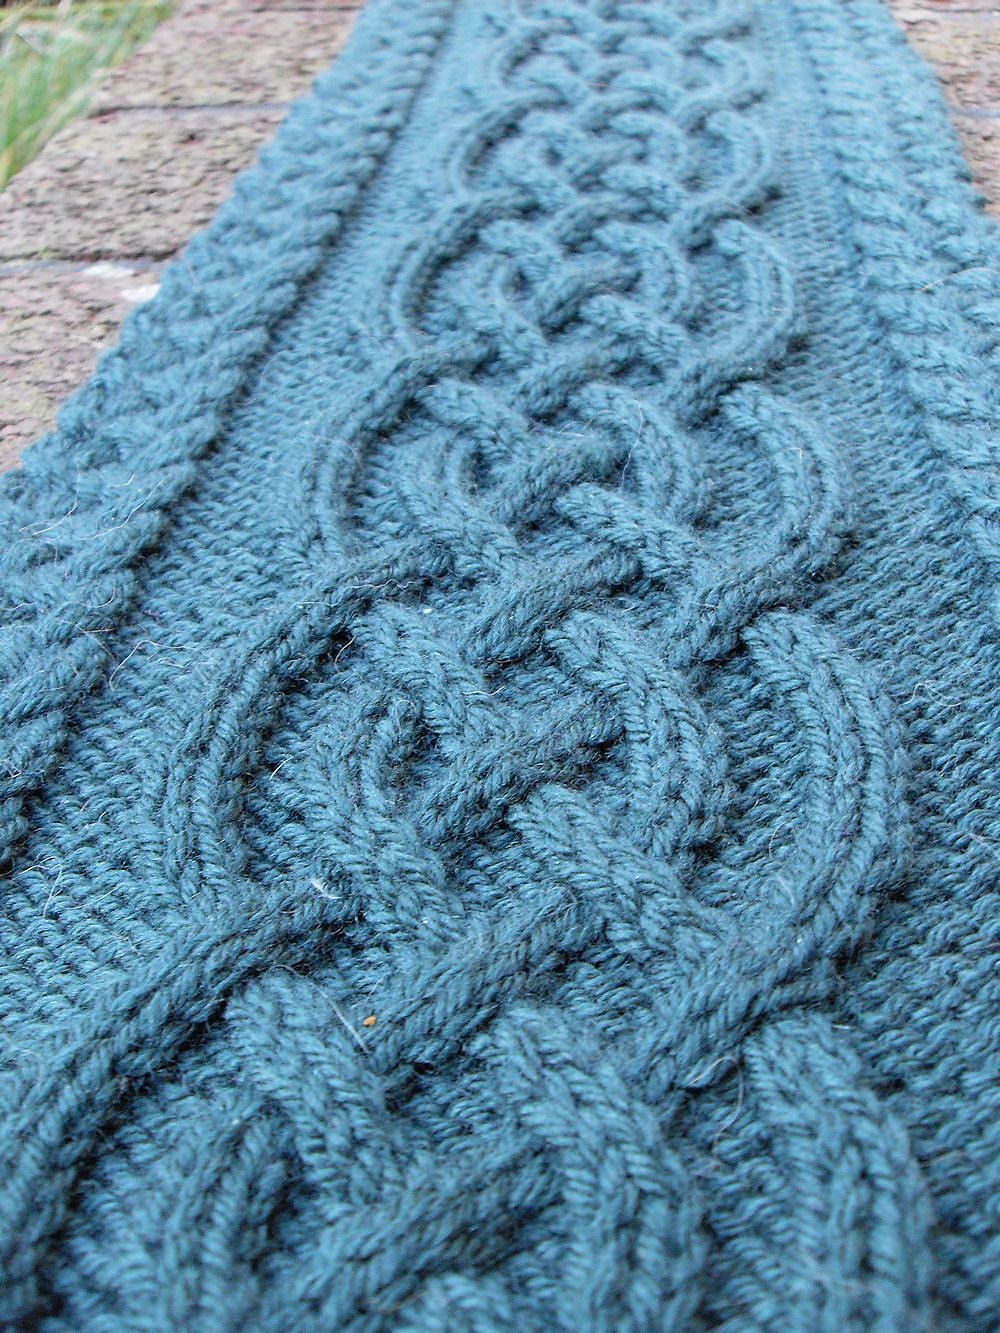 Celtic Knot Knitting Pattern Free : Celtic cable scarf by vanessa lewis free knitted pattern